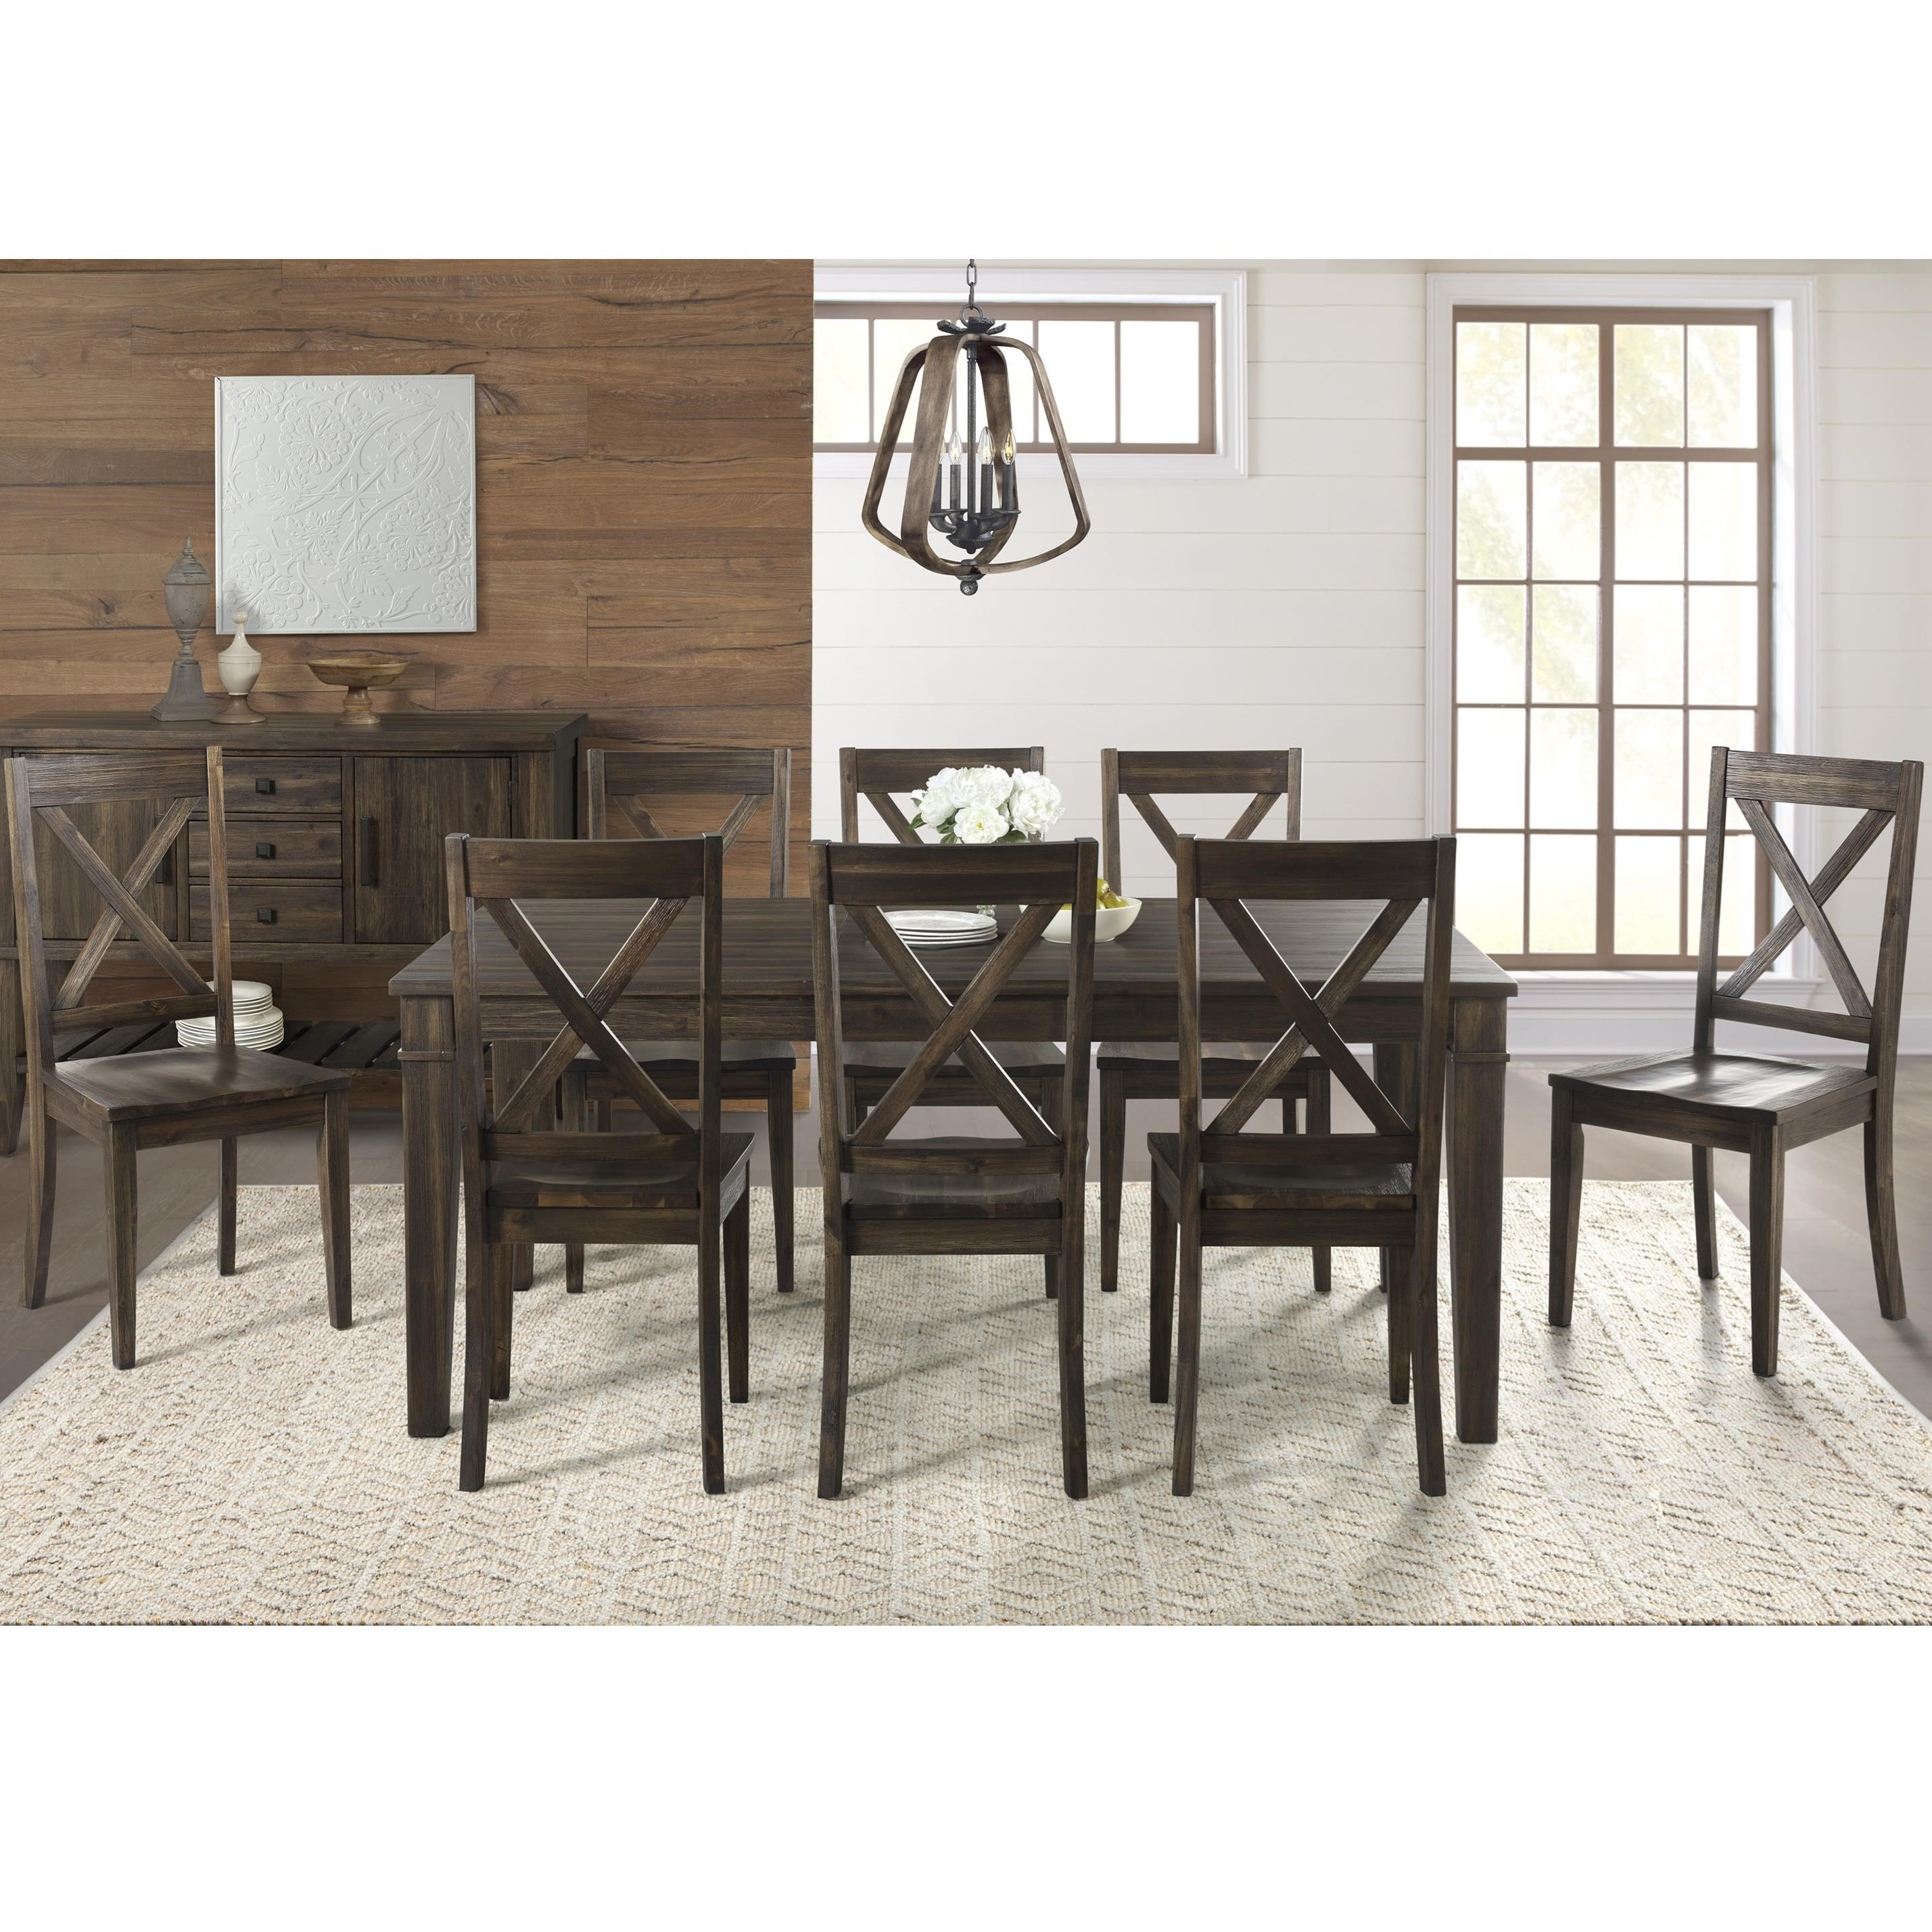 Huron Transitional Table and Chair Set by AAmerica at Home Furnishings Direct